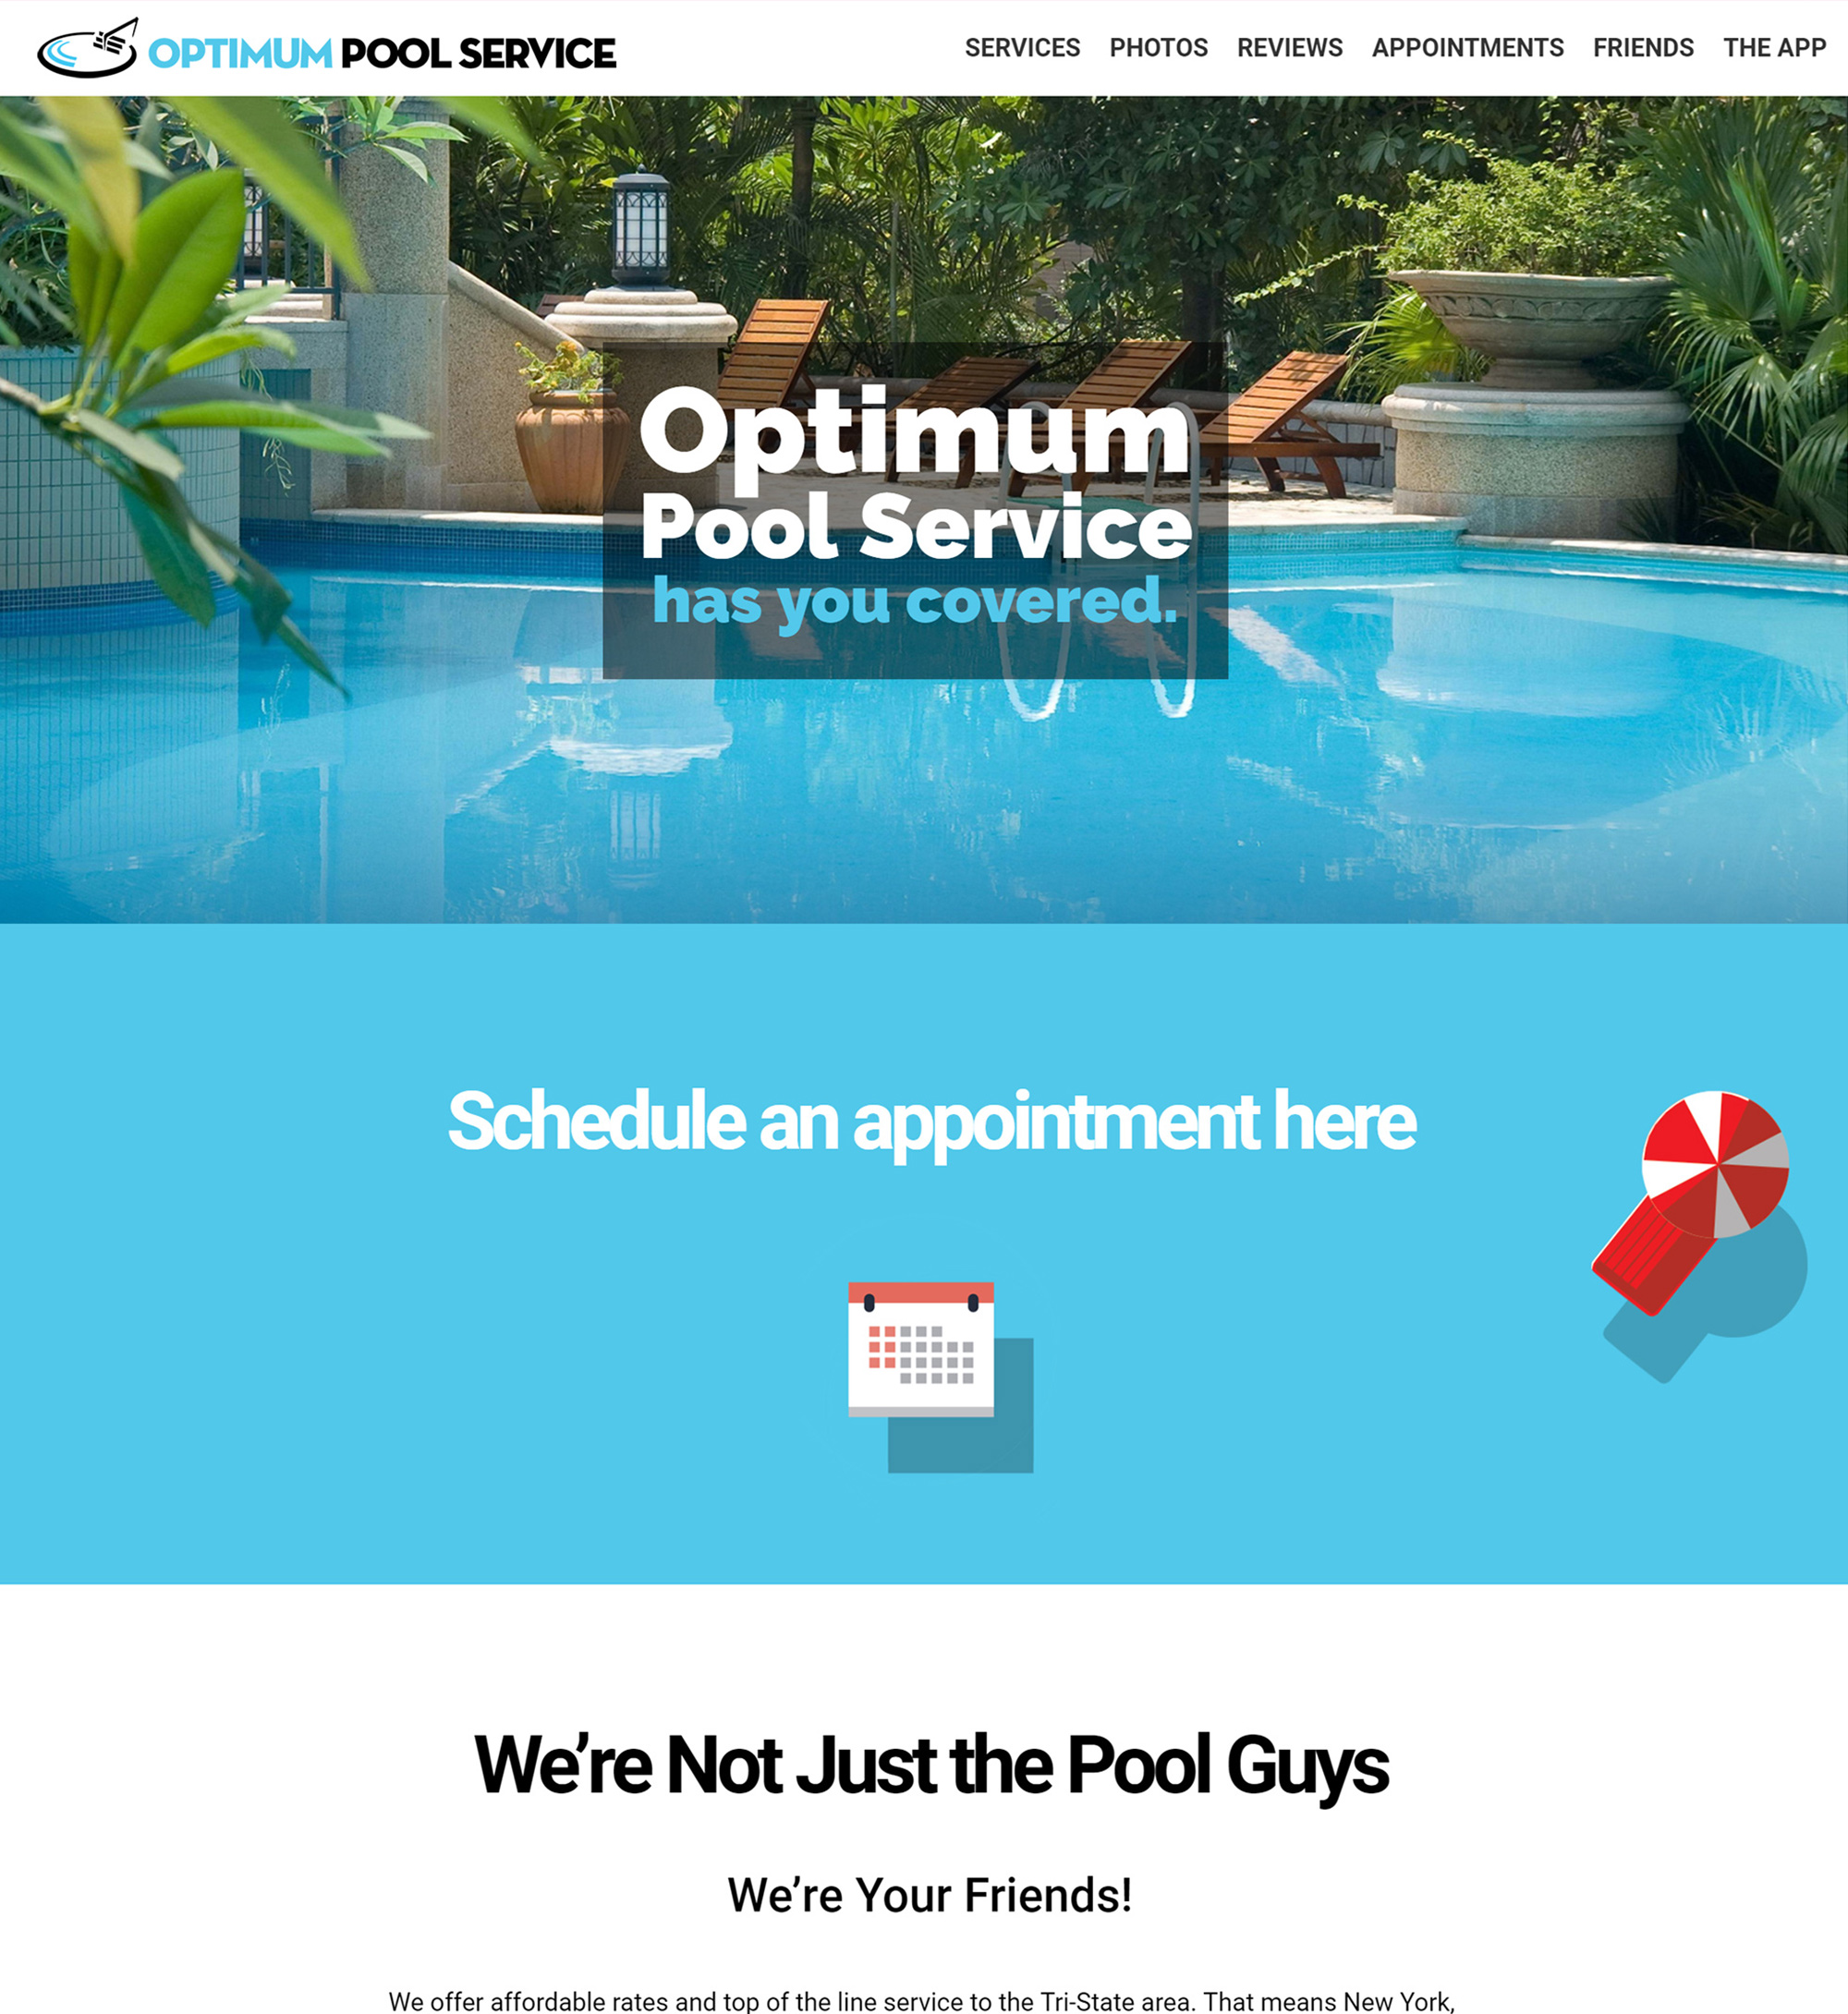 Optimum Pool Service website picture. www.optimumpoolservice.mobi